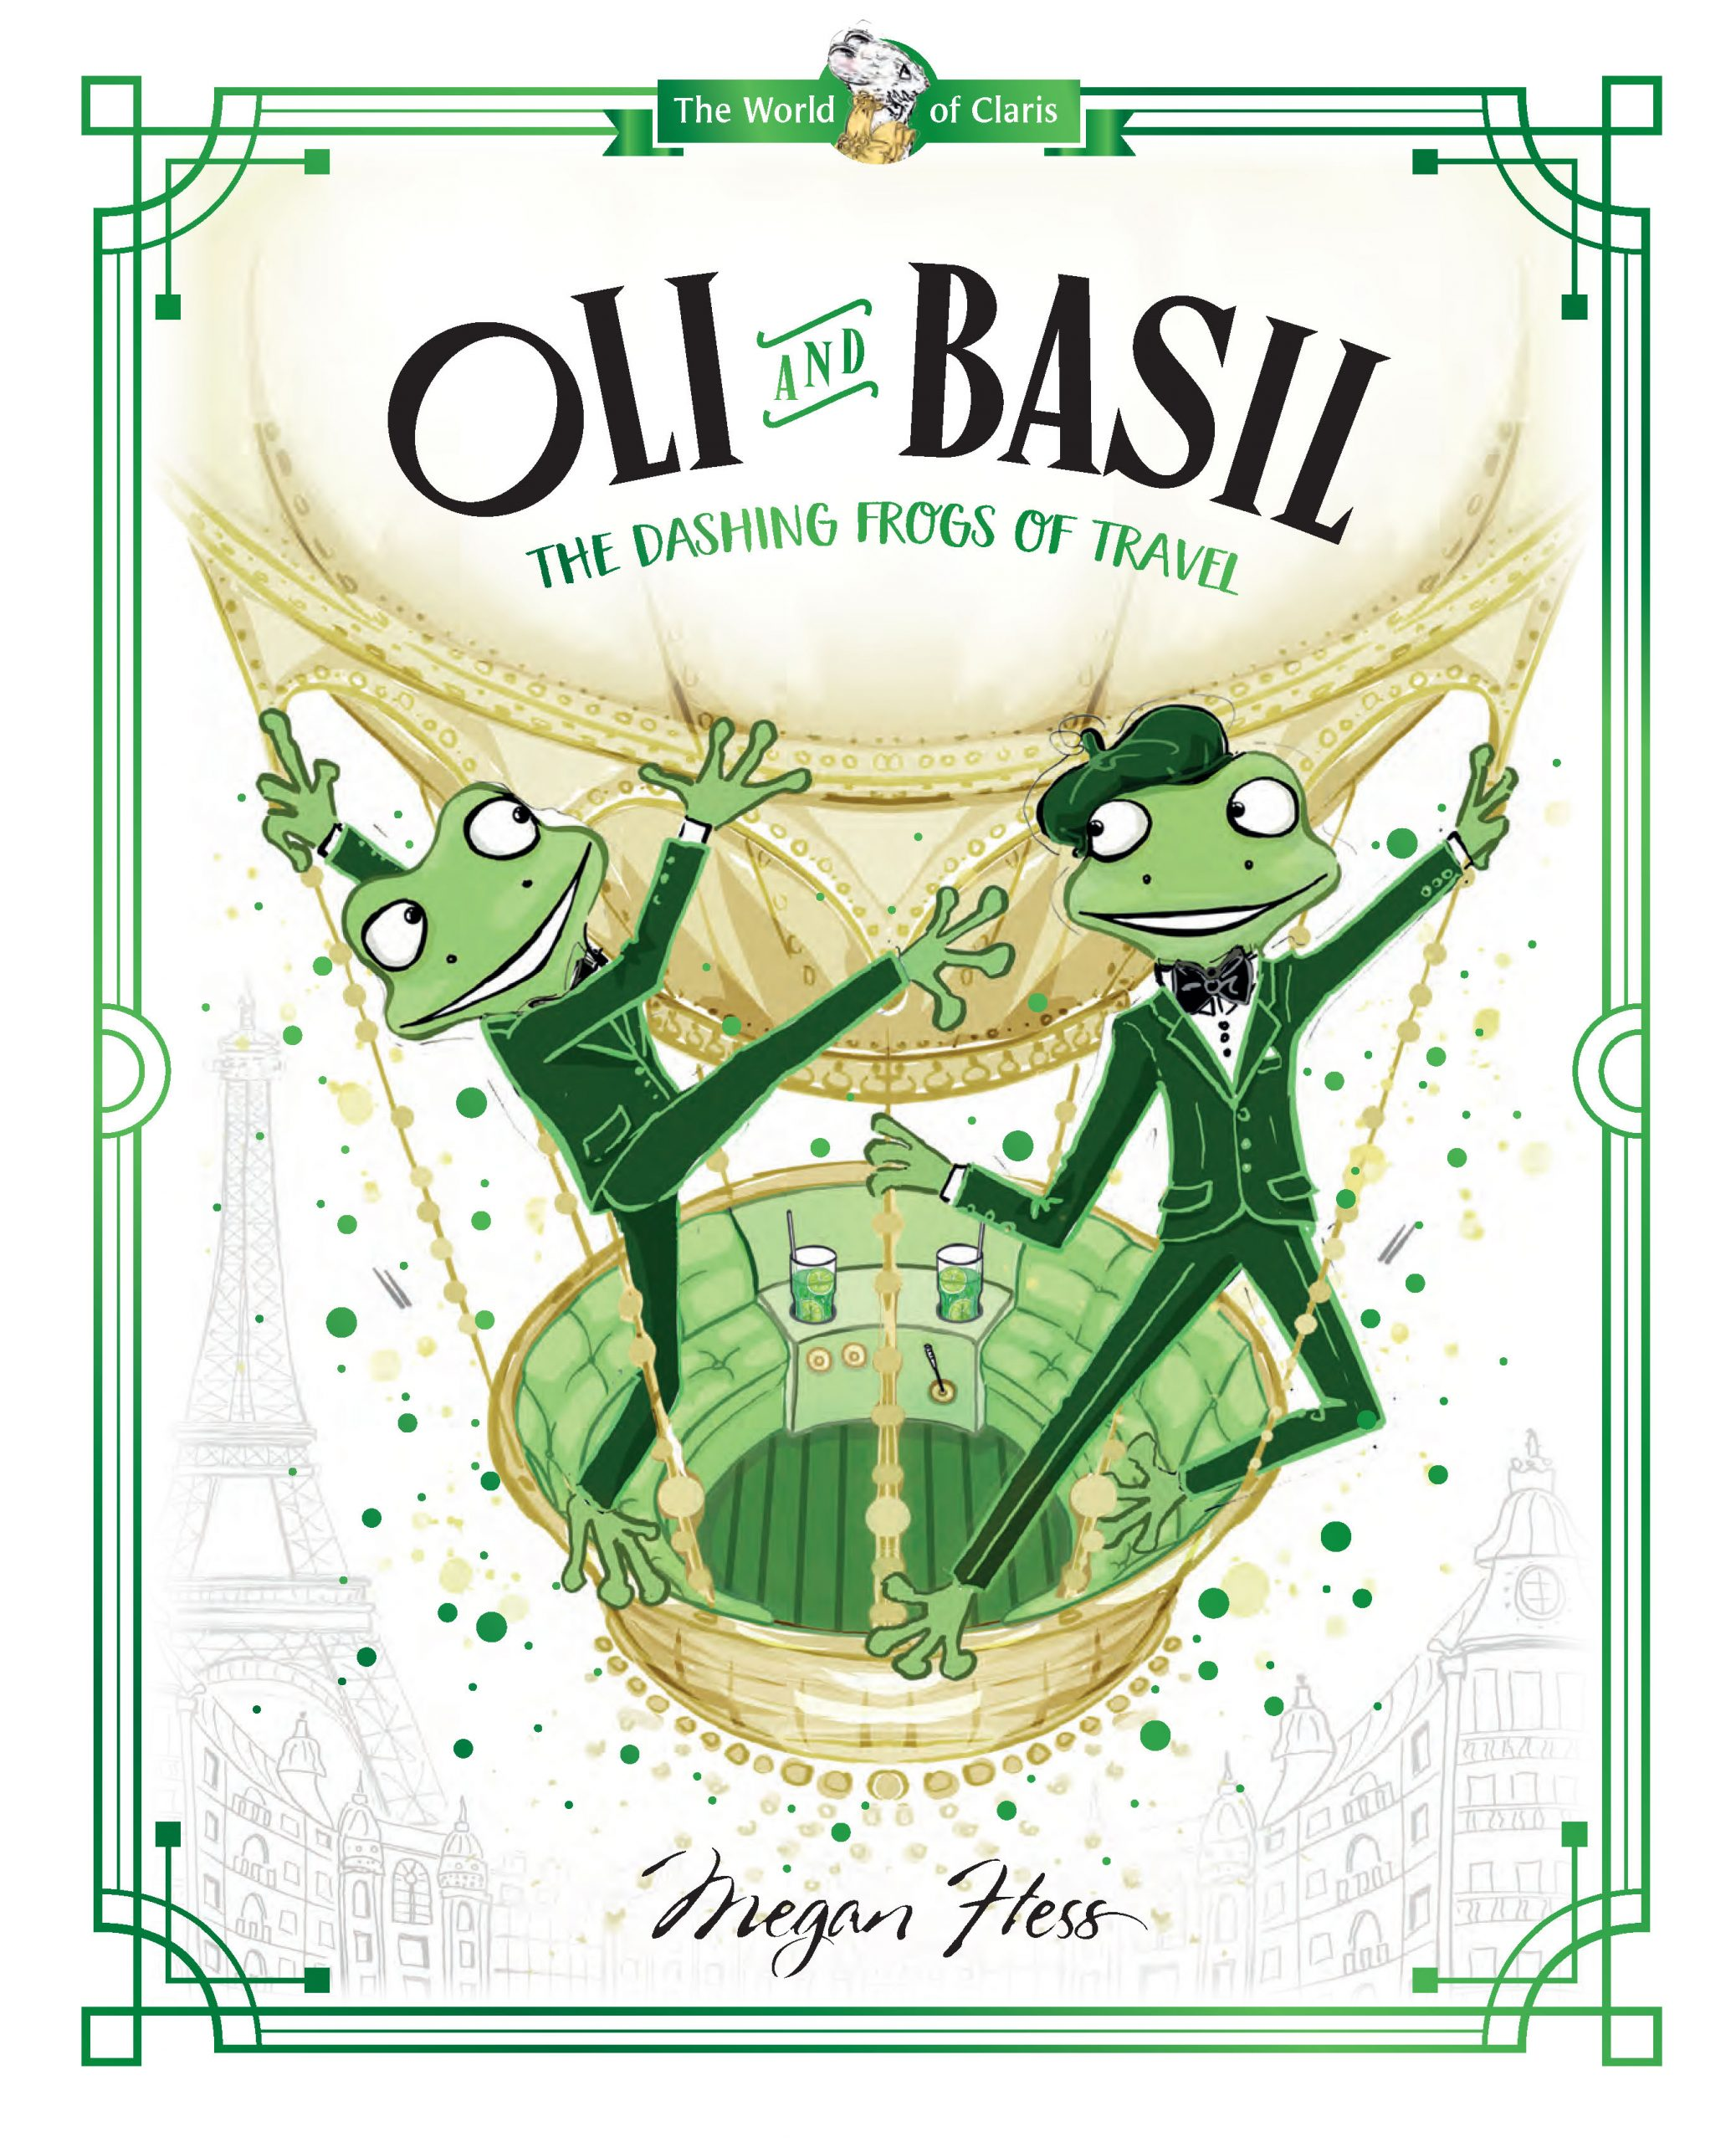 Oli and Basil: The Daring Frogs of Travel